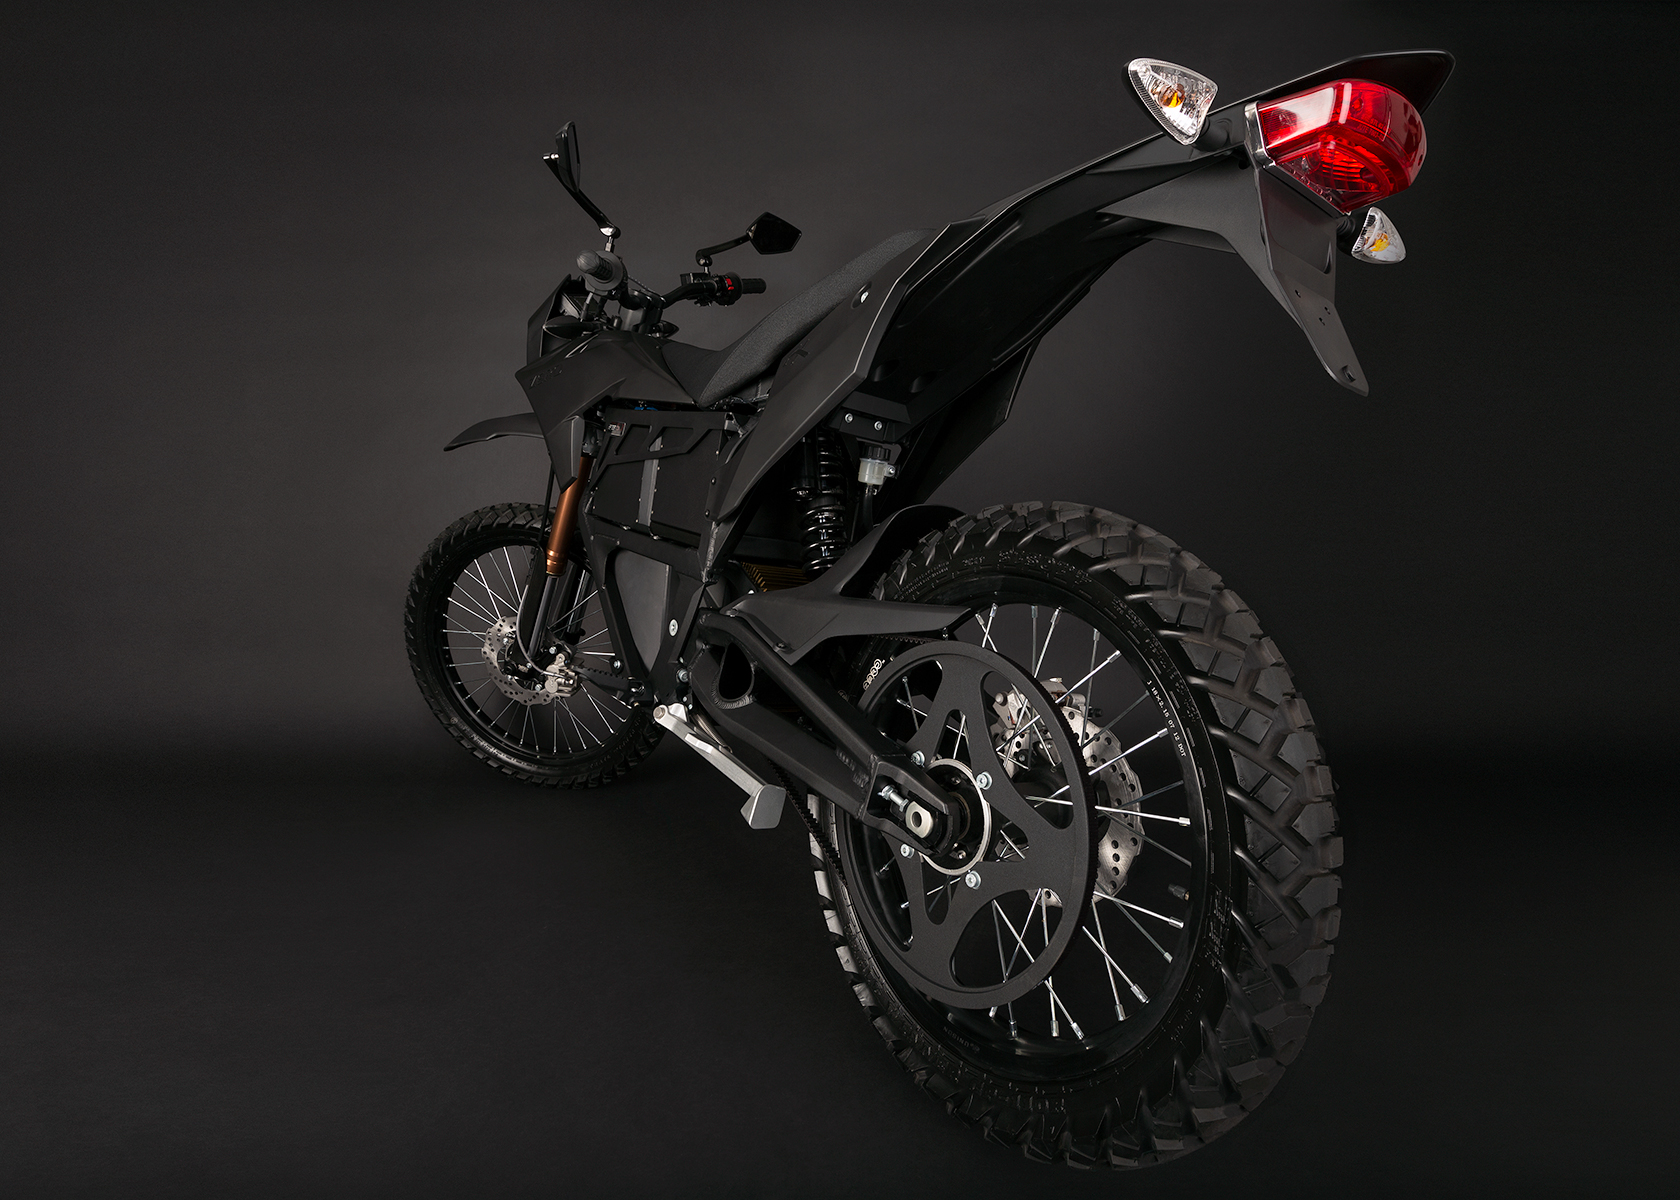 '.2013 Zero FX Electric Motorcycle: Black, Rear View.'